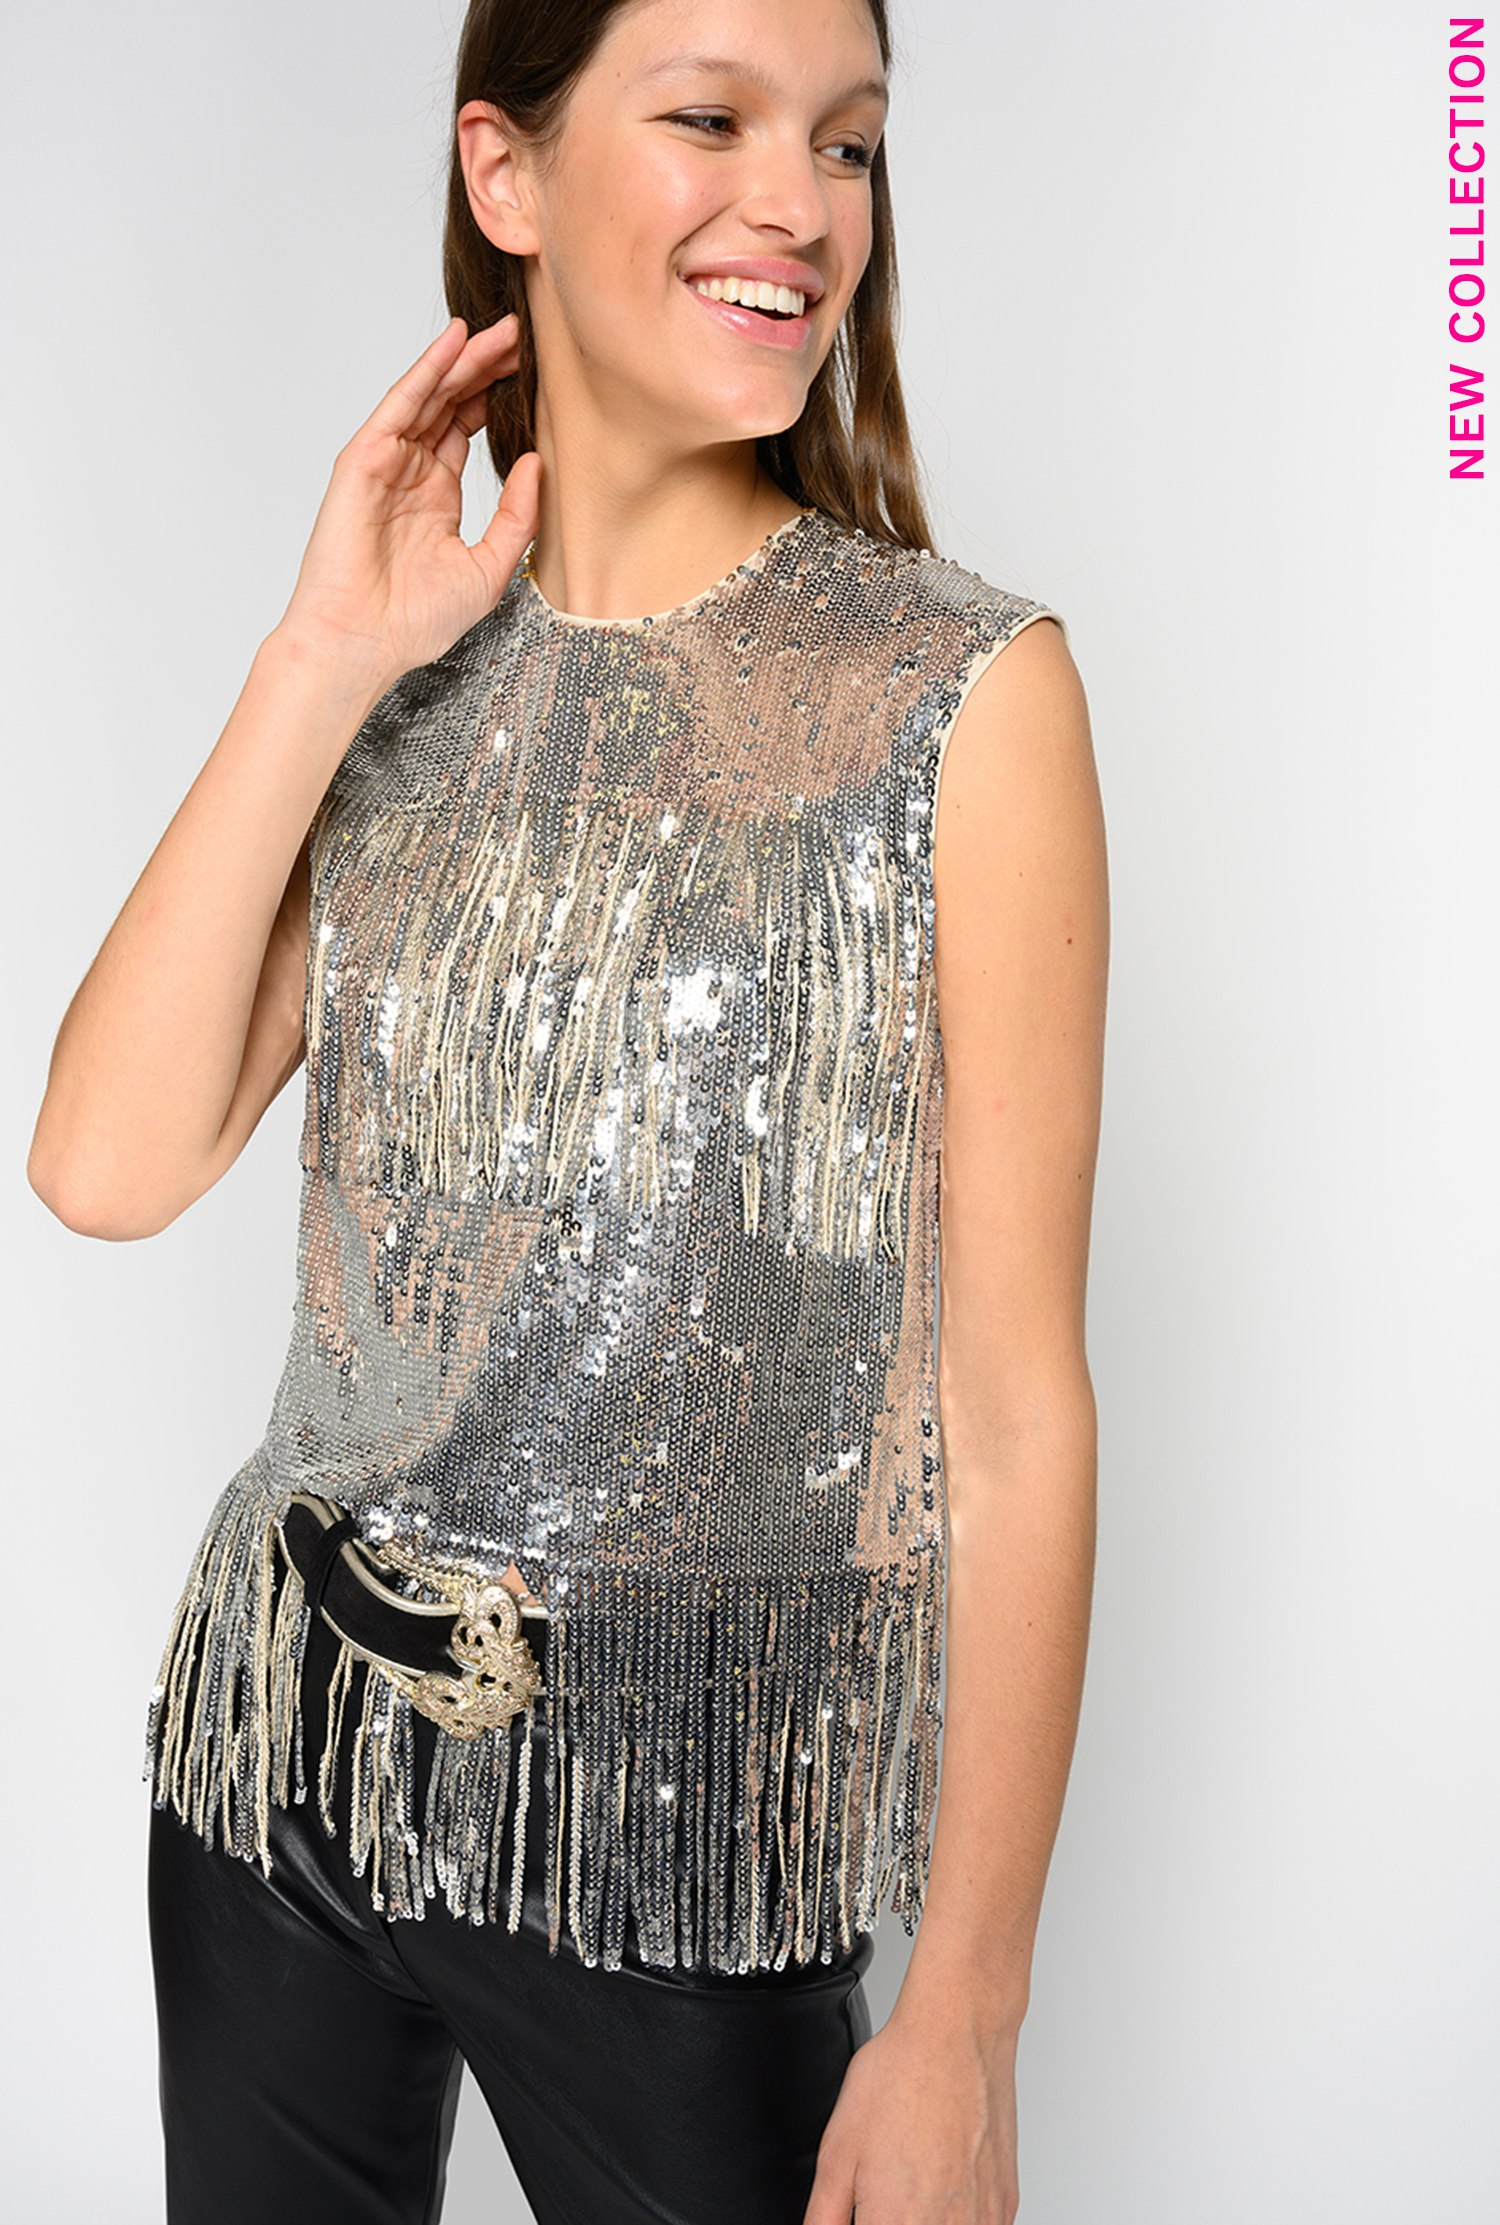 SHOPPING ON LINE PINKO TOP IN FULL PAILLETTES CON FRANGE CROSTATA NEW COLLECTION WOMEN'S SPRING SUMMER 2020